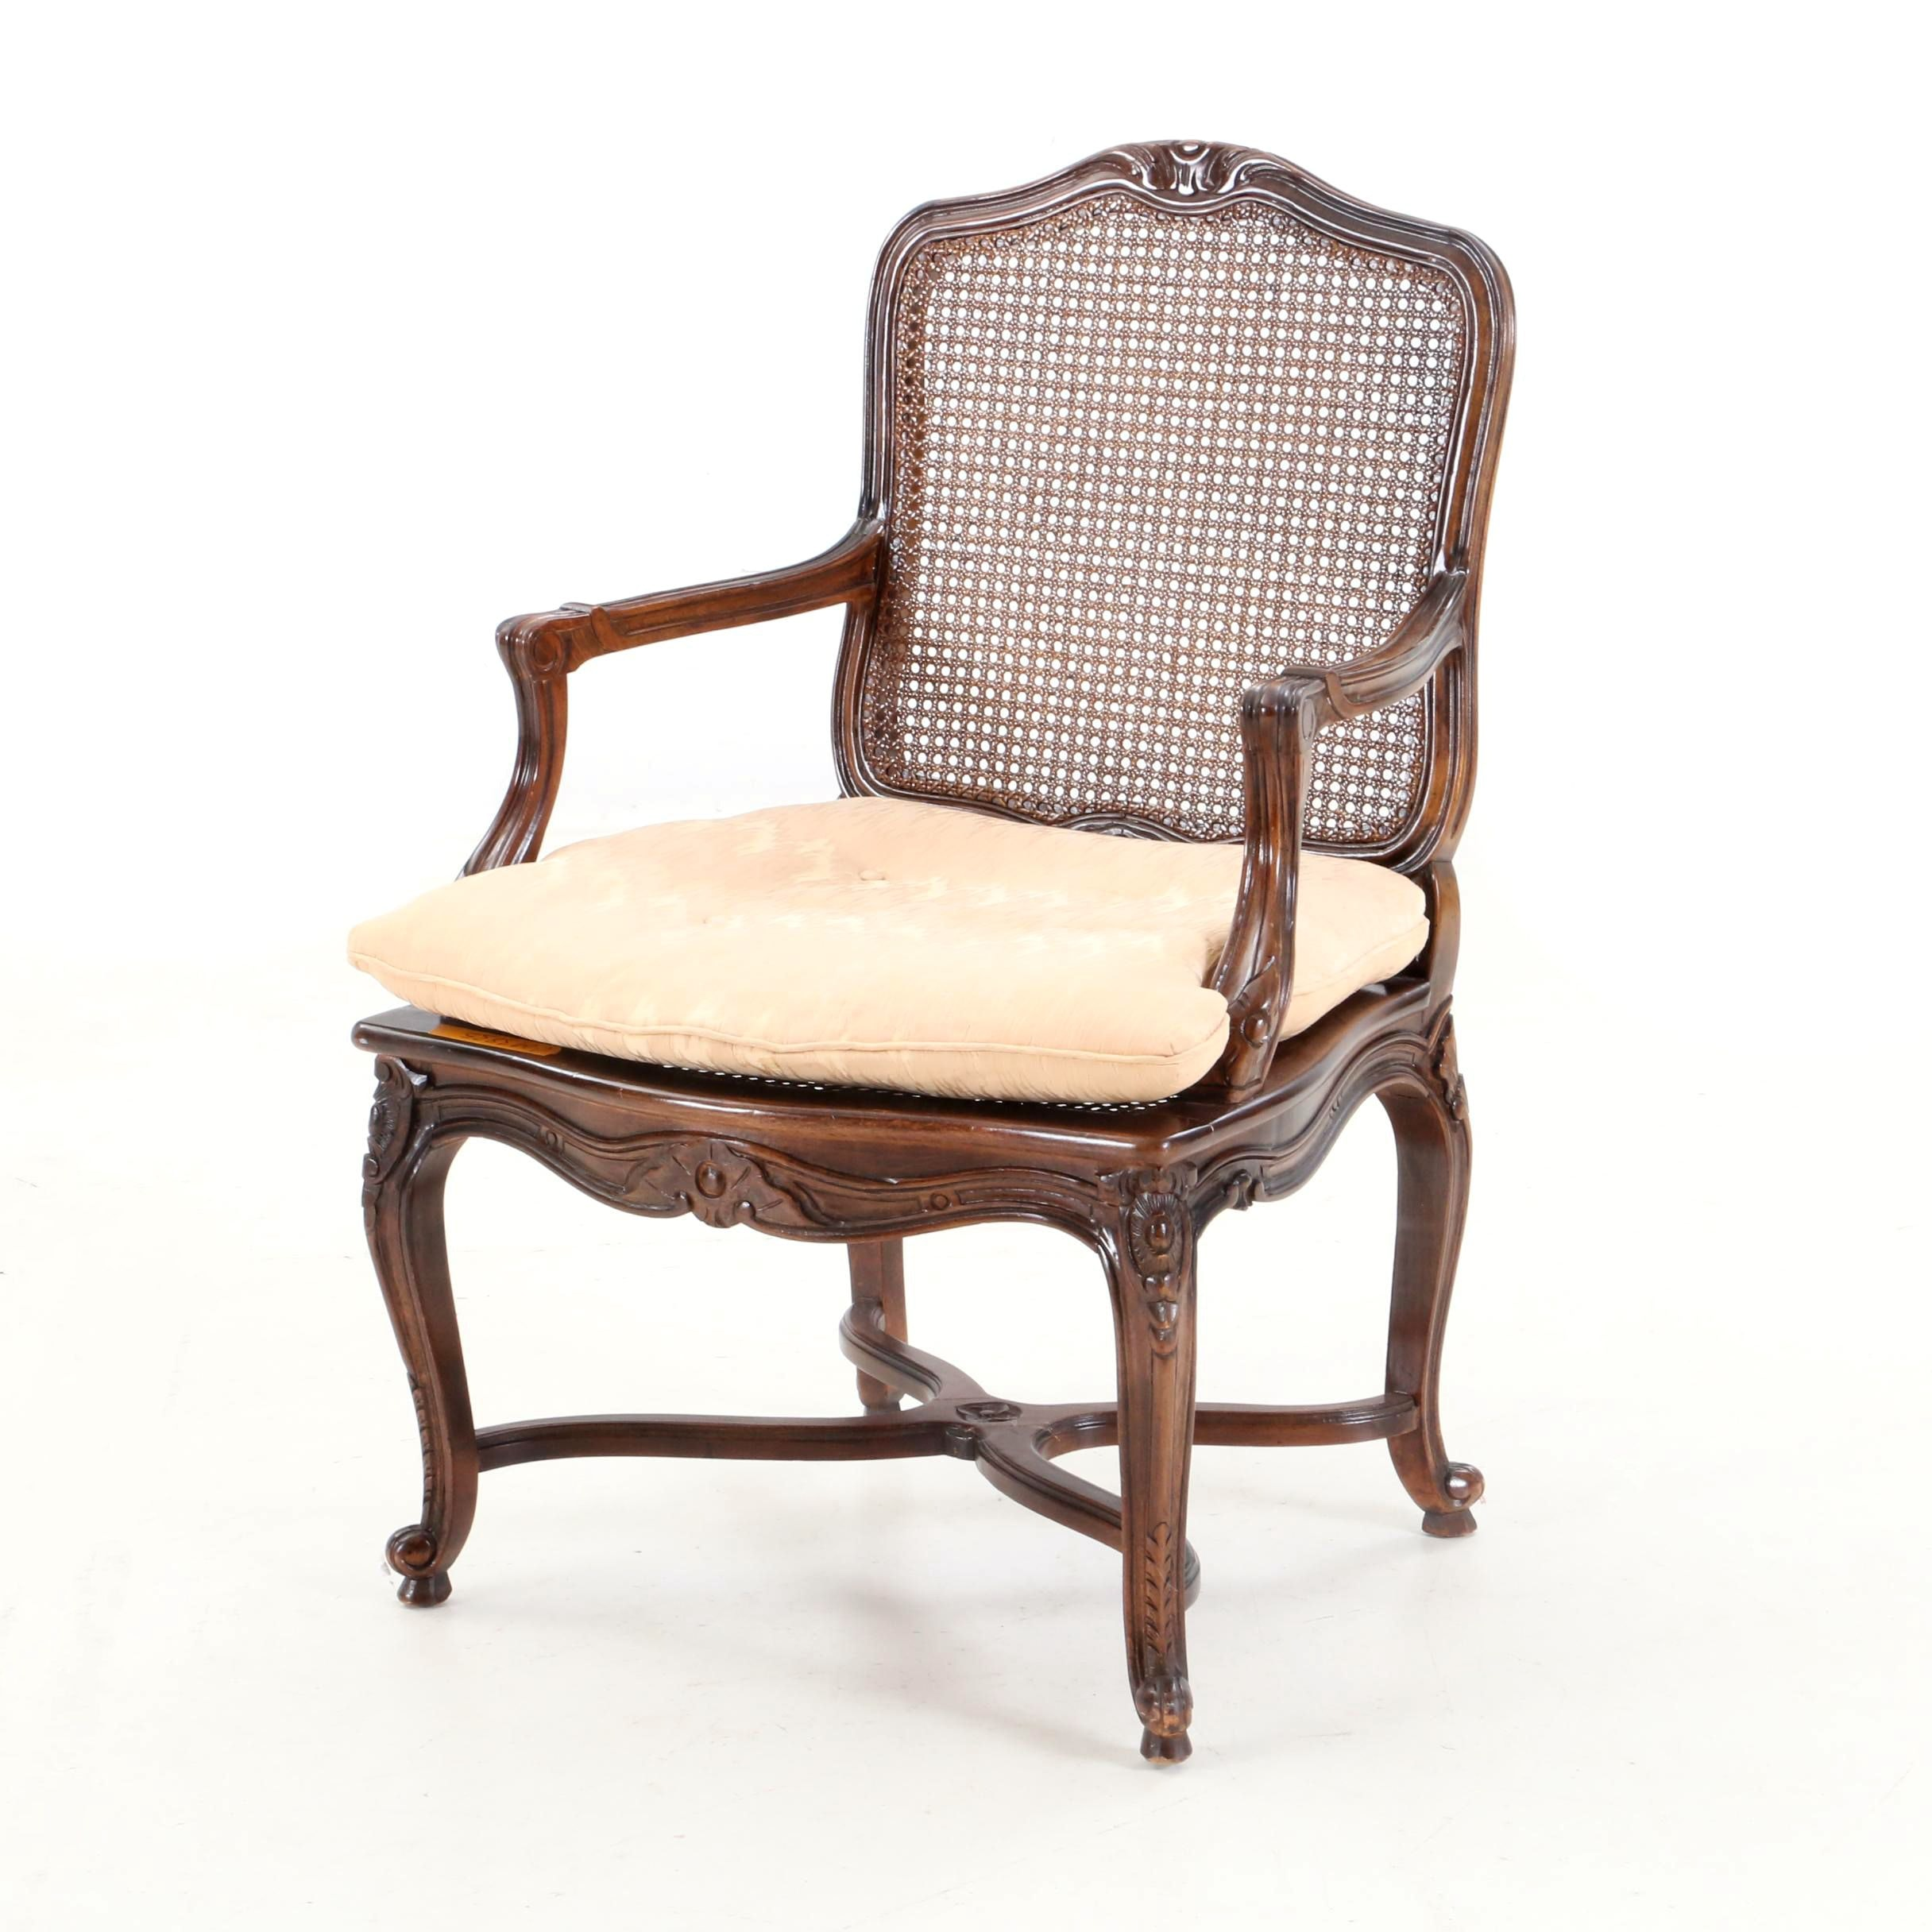 French Provincial Style Cane Panel Armchair, Late 20th Century